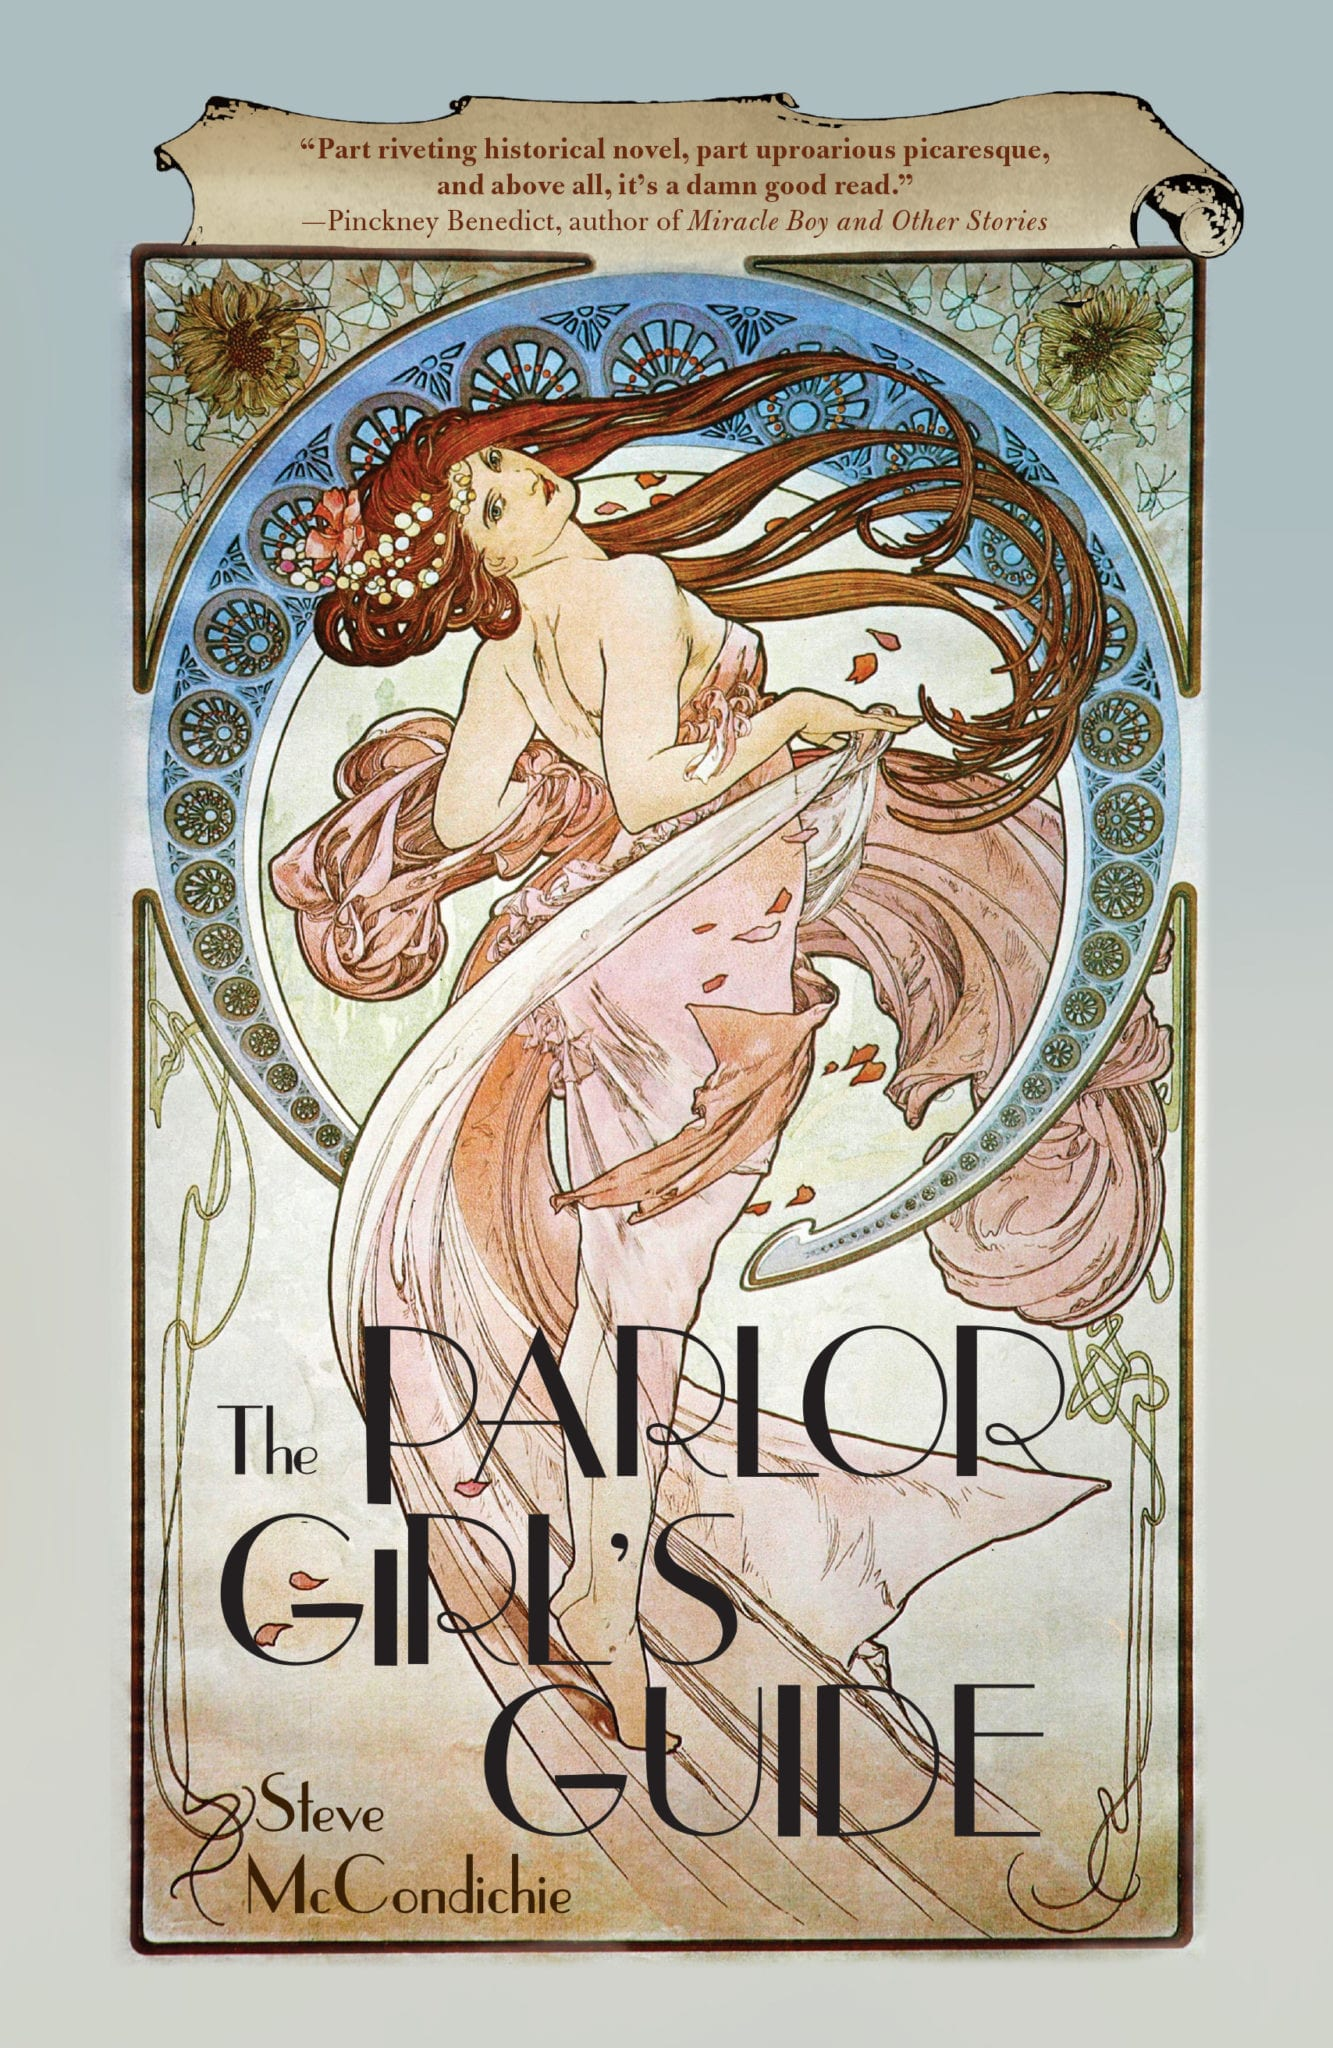 PARLOR_front-cover_hi-res.jpg